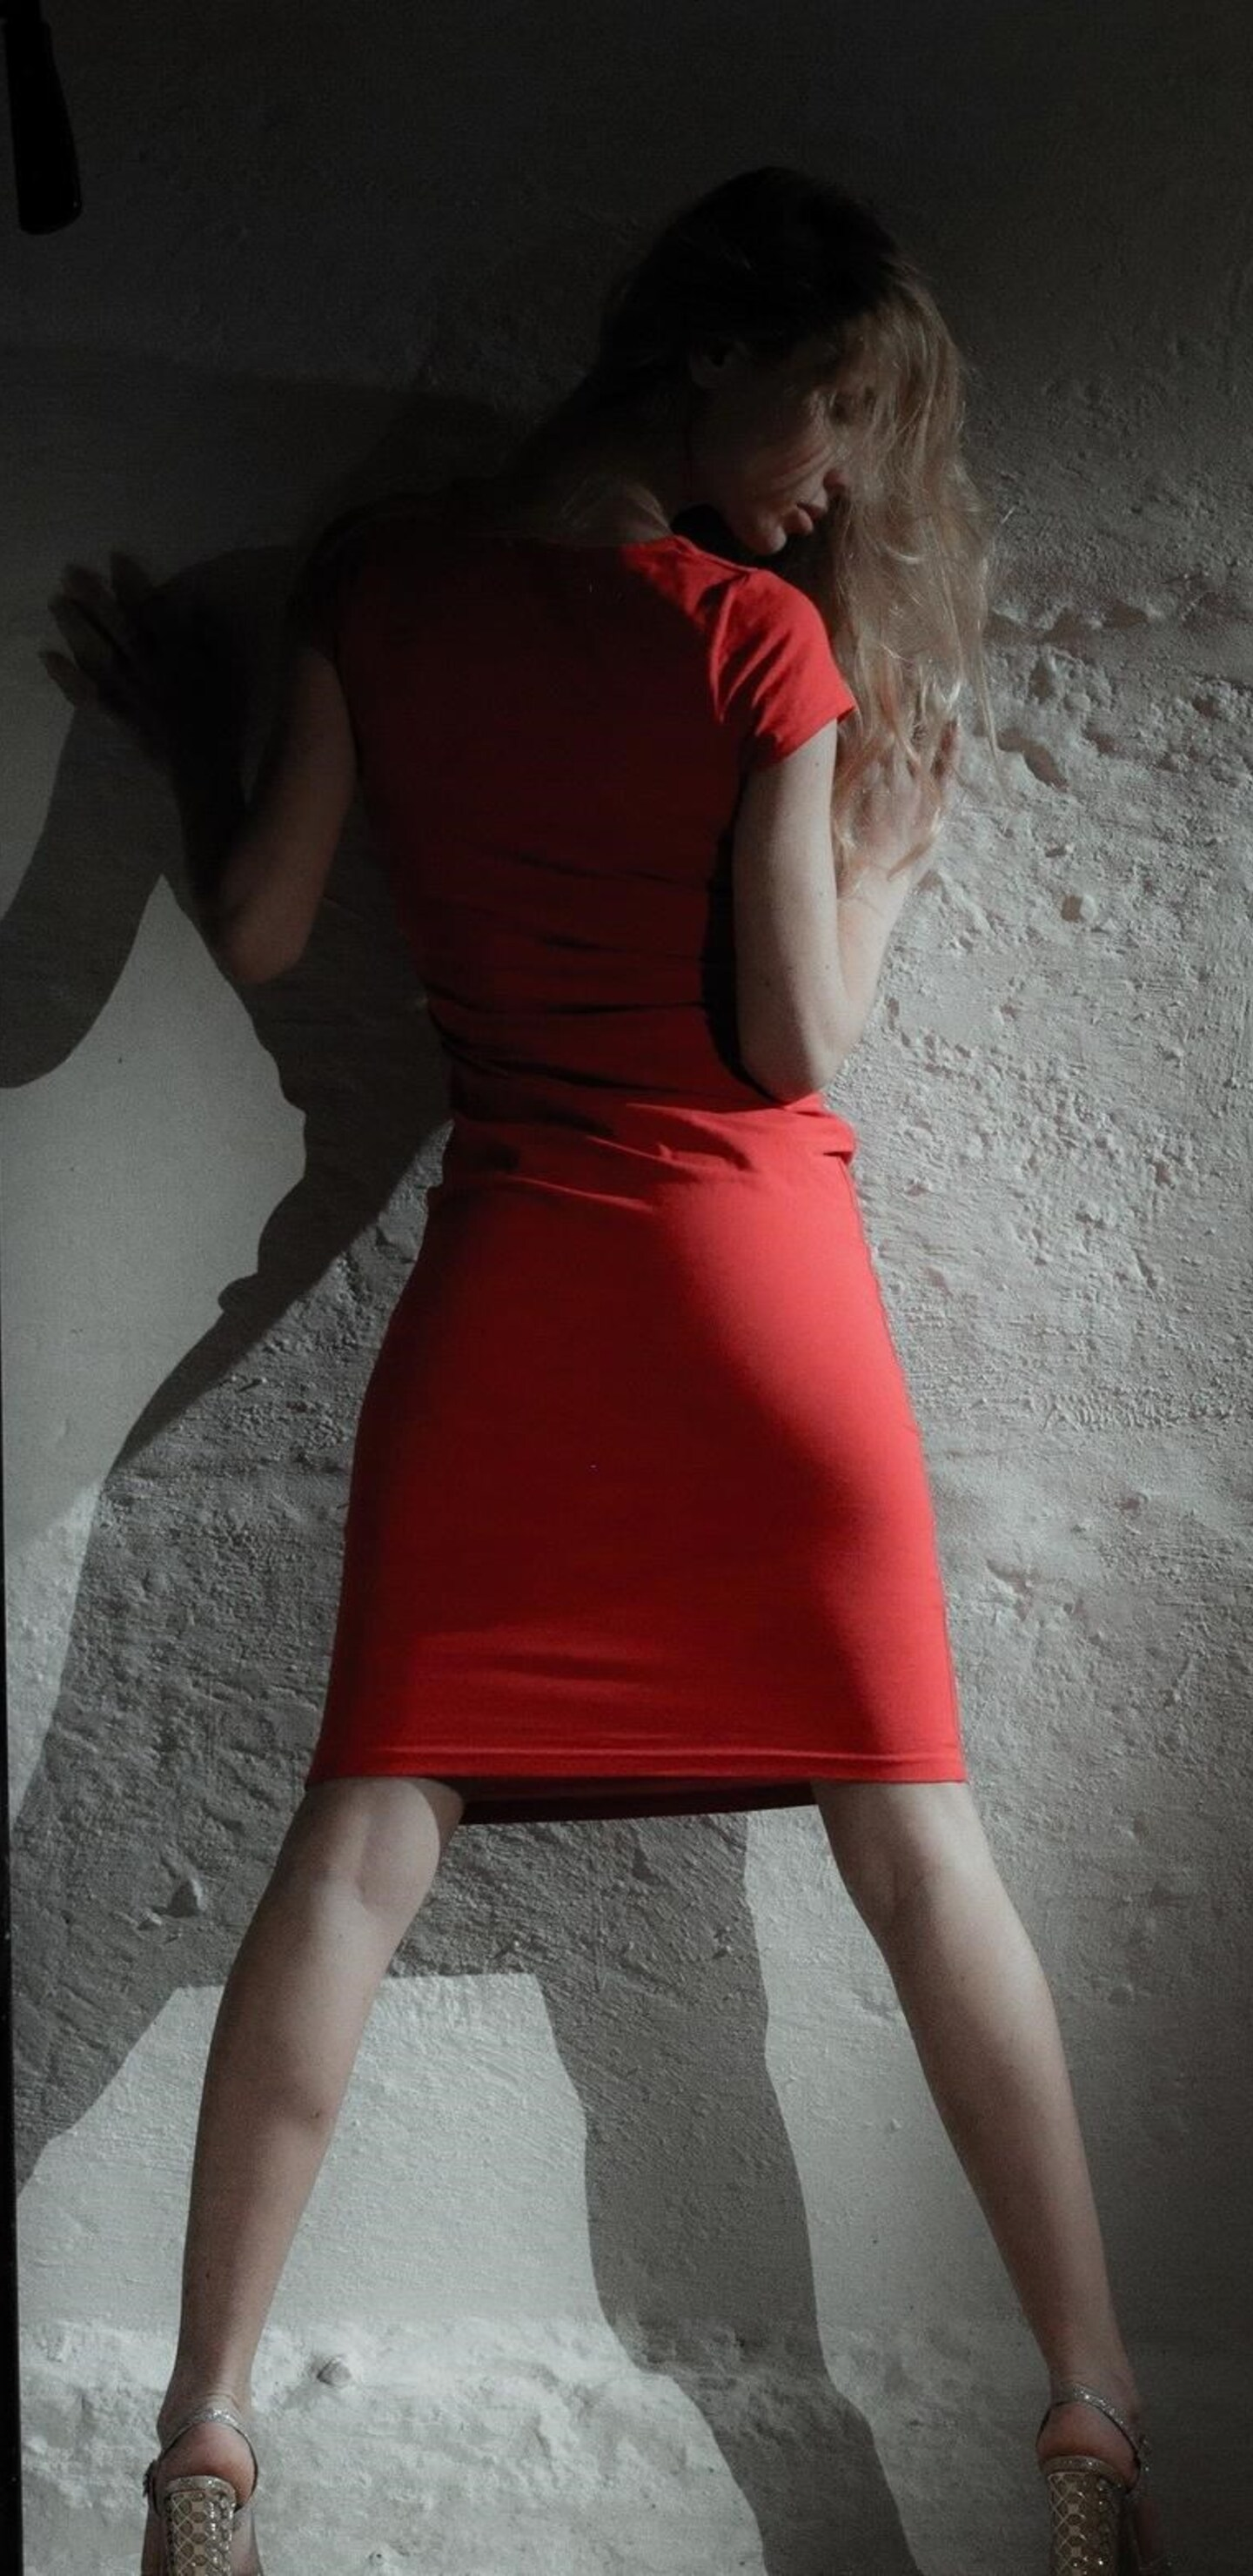 red-dress-model-image.jpg